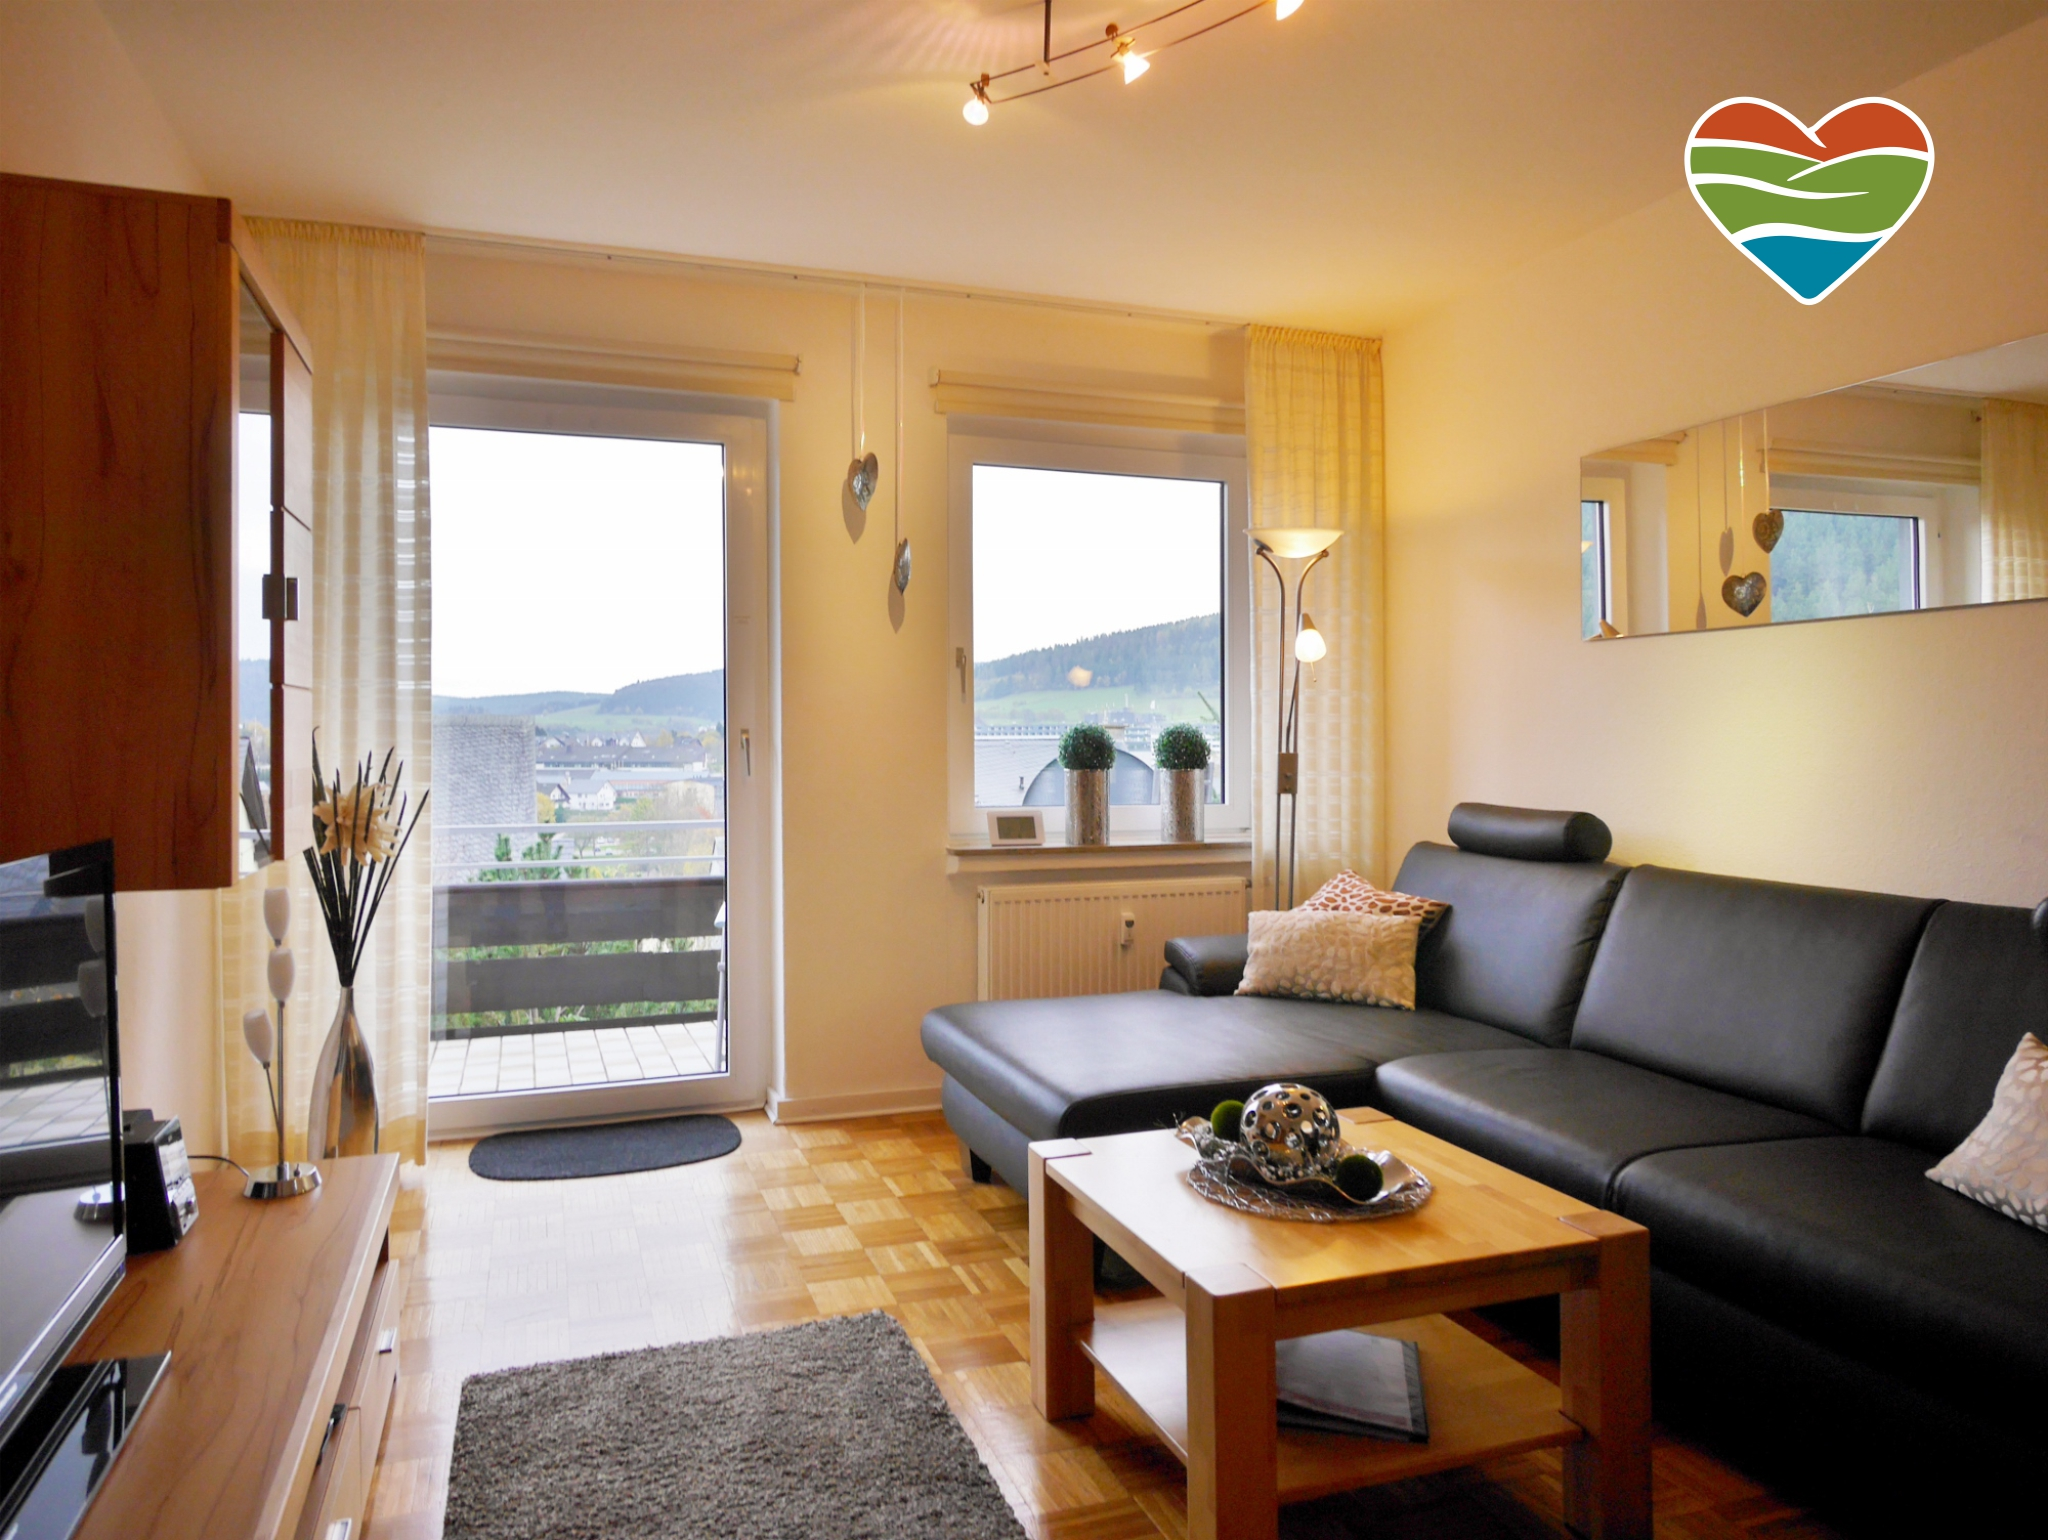 Ferienhaus Mit Pool Willingen Panorama Apartments Im Zentrum Fewozentrale Willingen De